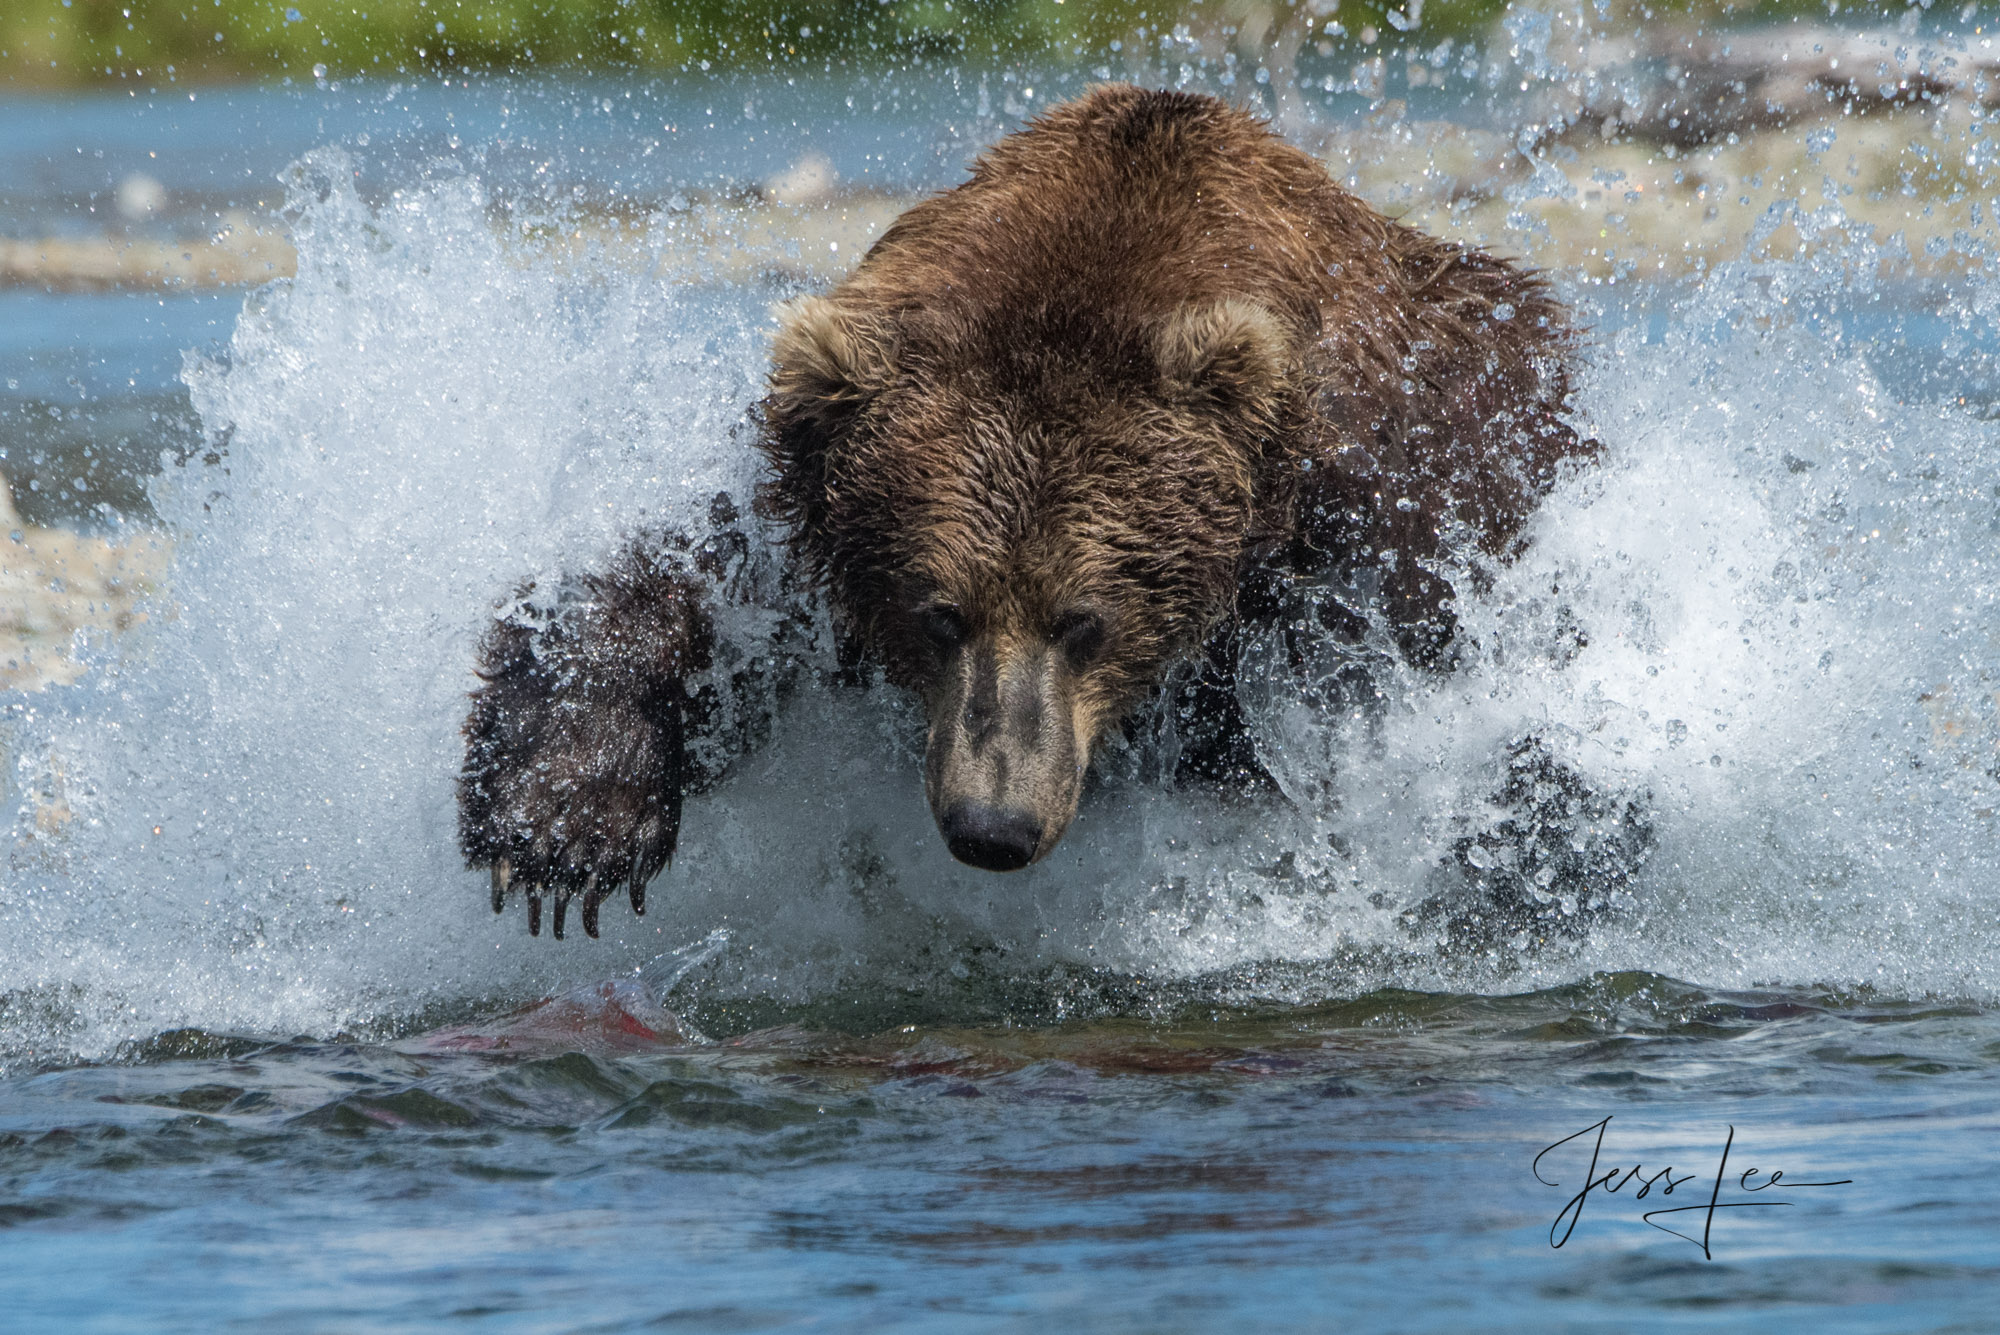 Grizzly bear hunting for salmon in Katmai National Park, Alaska